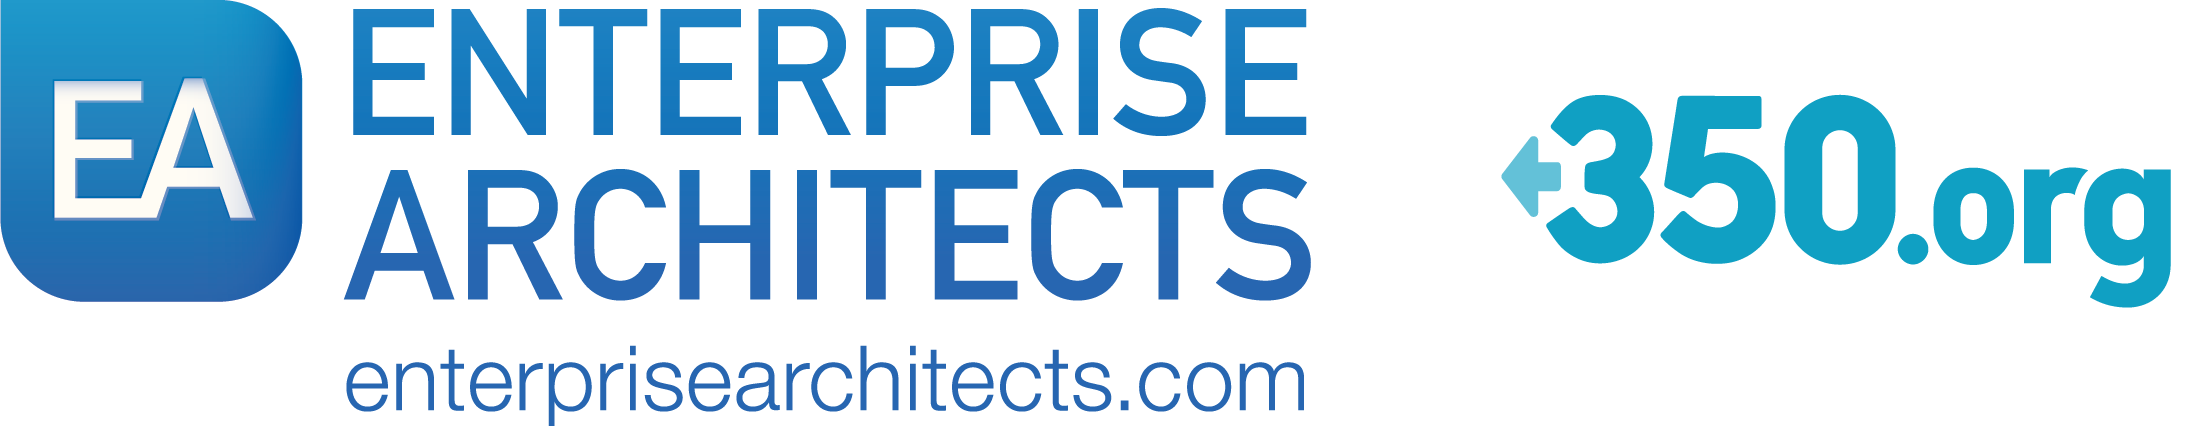 Enterprise Architects and 350.org